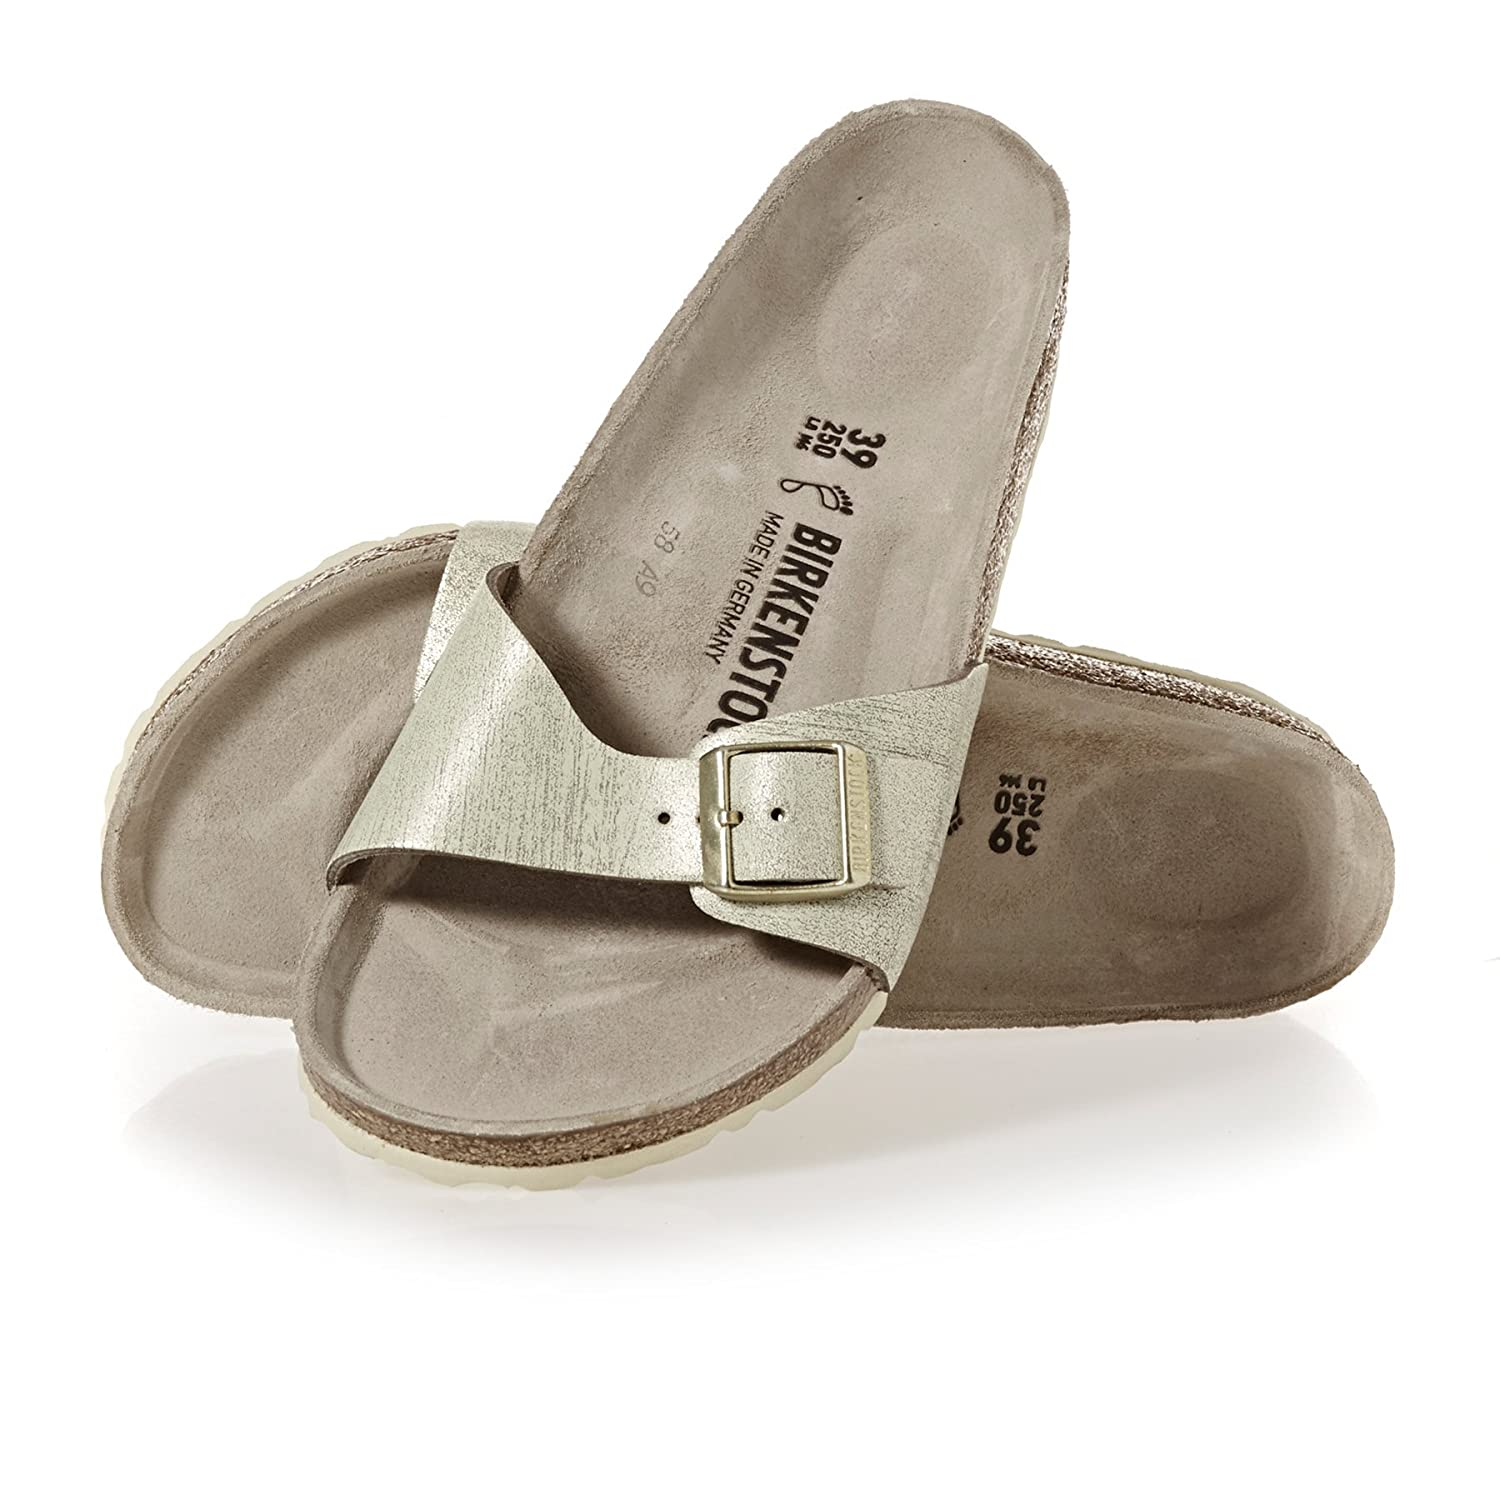 Vl Birkenstock Womens Washed Madrid Metallic Sandals Buy hrsQCtd